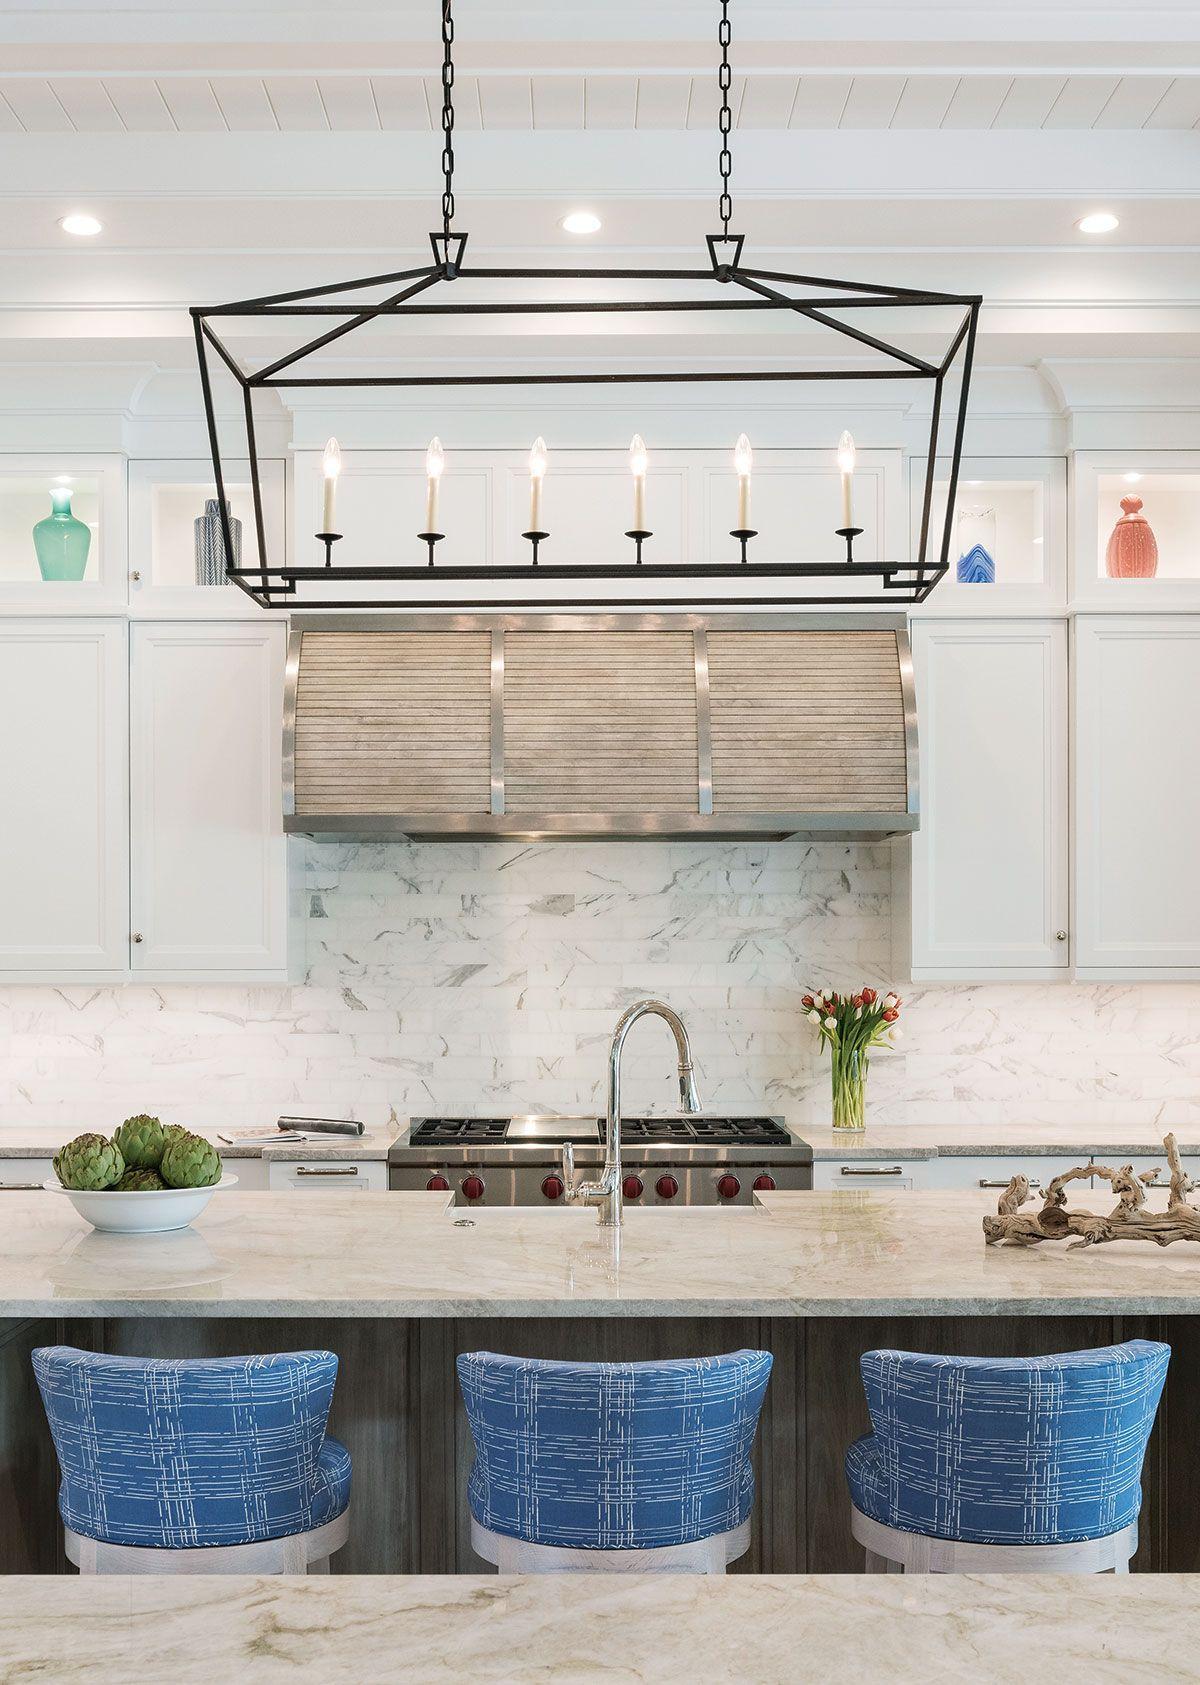 Genial In This Kitchen, A Custom Stove Hood Crafted By Ruffino Cabinetry With  Wooden Slats And